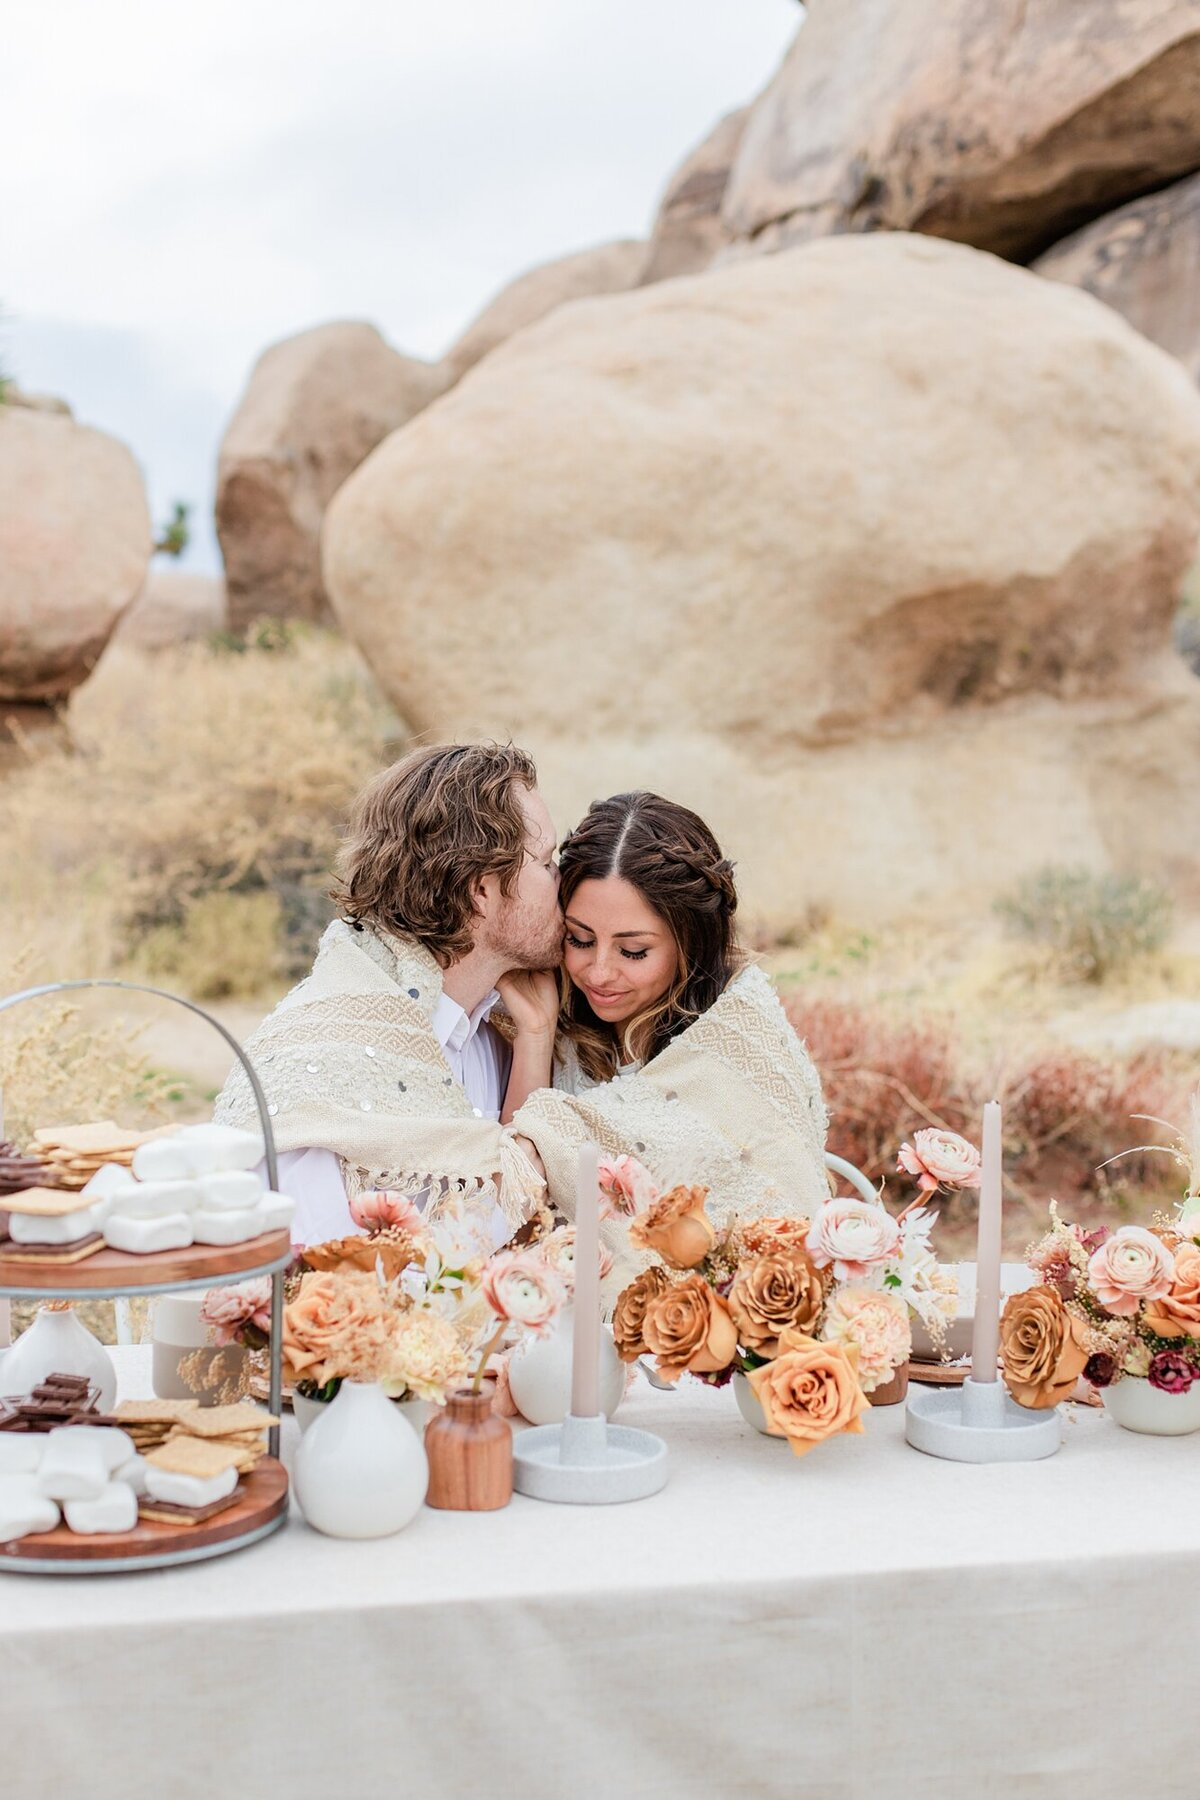 Joshua Tree Elopement Photographer | Desert Elopement | Elopement Photographer | Glamping Elopement | Campfire Elopement | Glamping Engagement | Campfire Engagement | Styled Shoot | So Cal Shootouts_0054